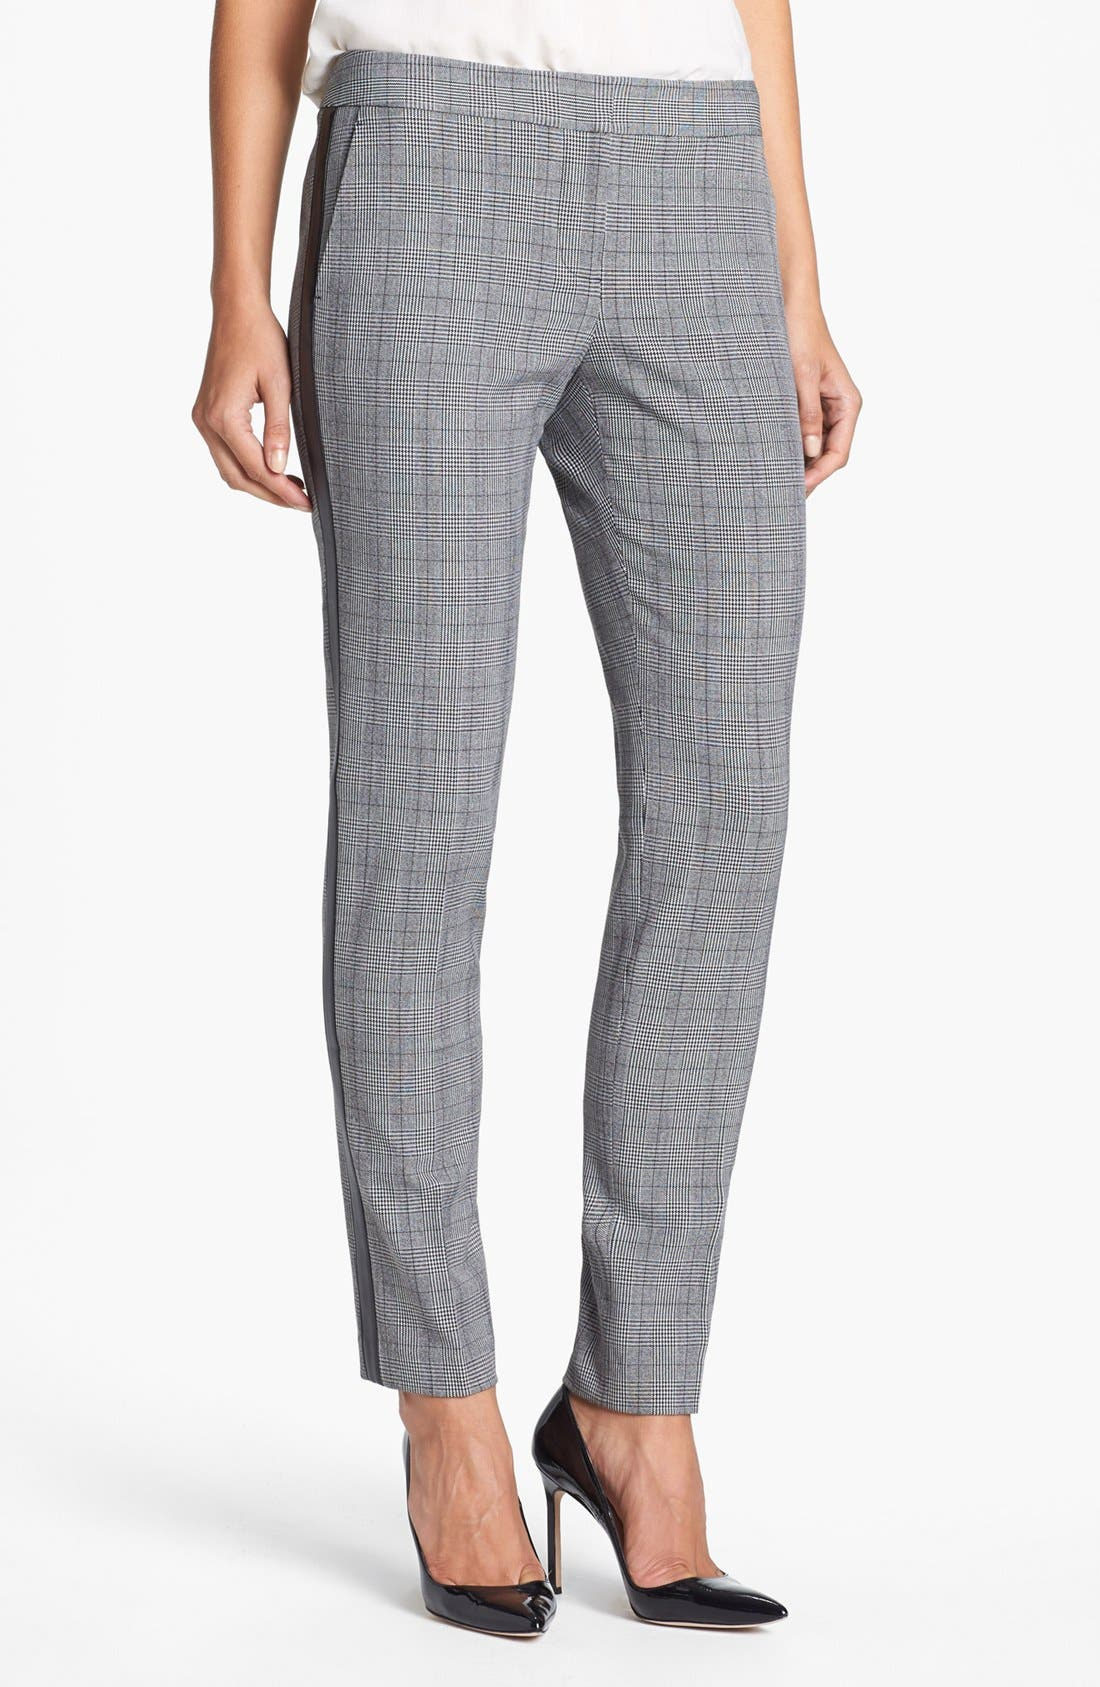 Alternate Image 1 Selected - Vince Camuto Faux Leather Stripe Glen Plaid Trousers (Online Exclusive)